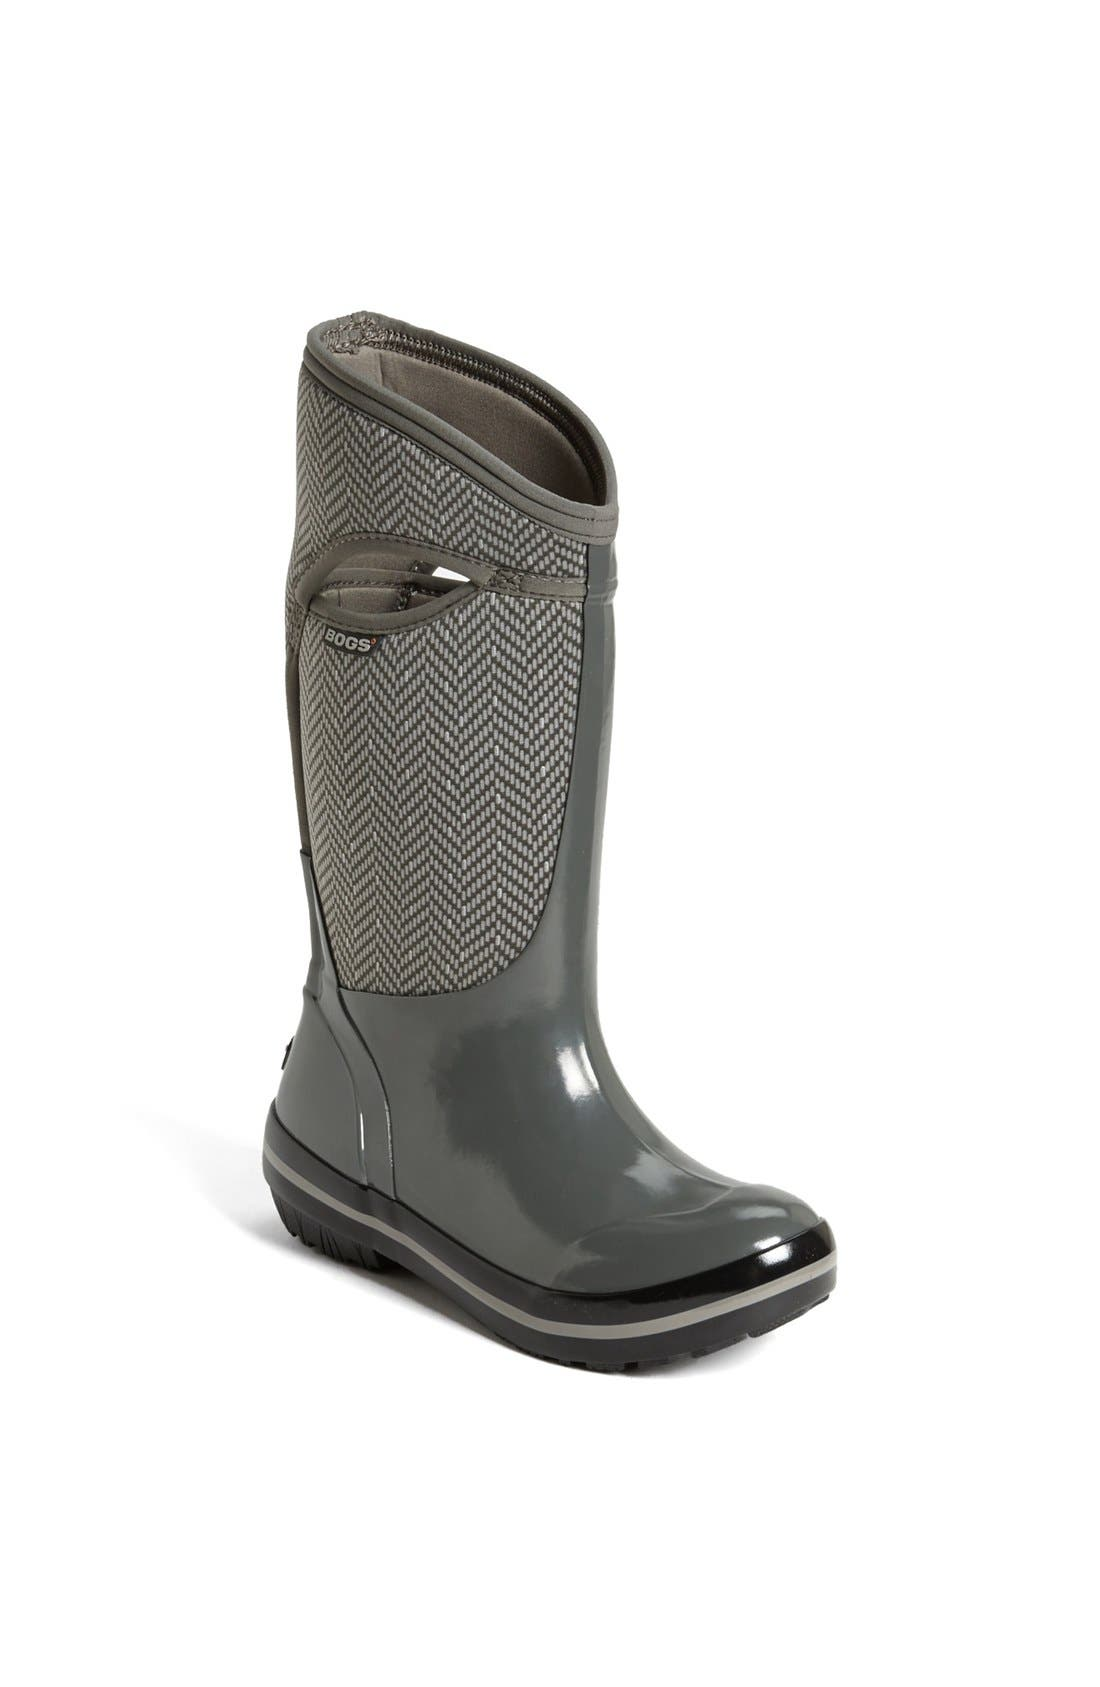 Main Image - Bogs 'Plimsoll' Tall Rain Boot (Women)